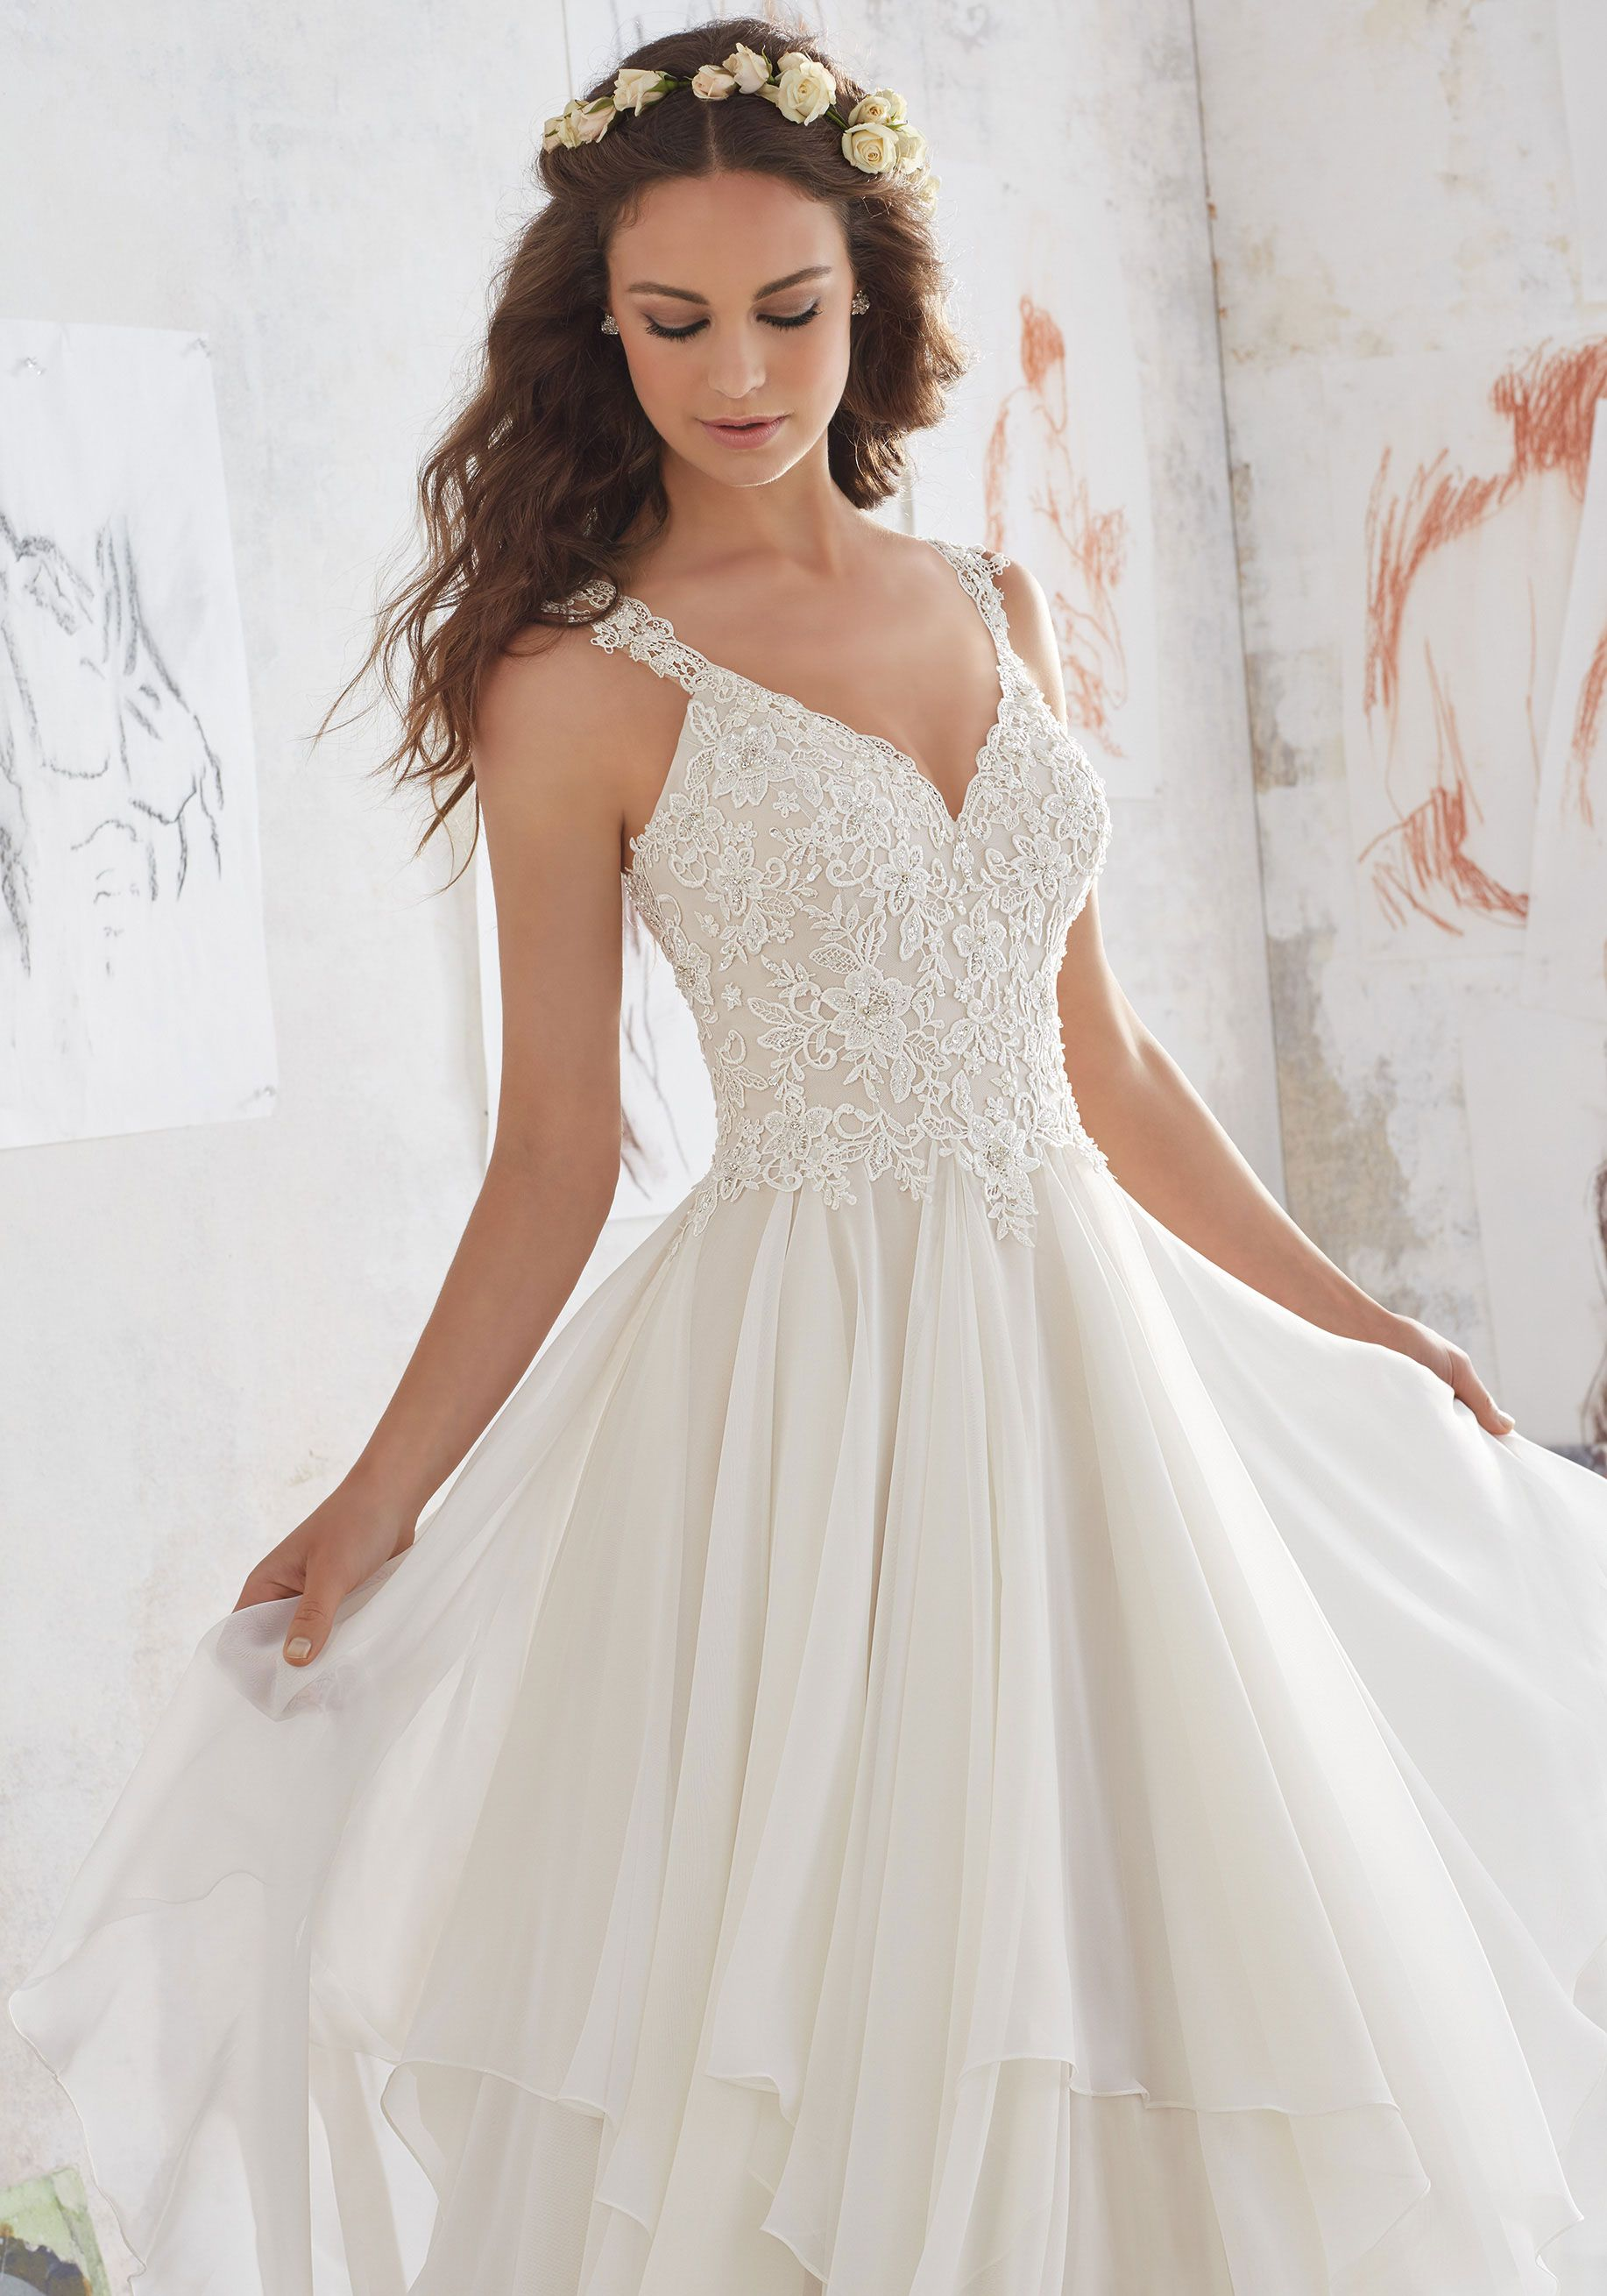 24ab1c2d449a This Boho Lace Wedding Gown Beautifully Combines Romantic Layers of  Flounced Chiffon and a Fitted Bodice